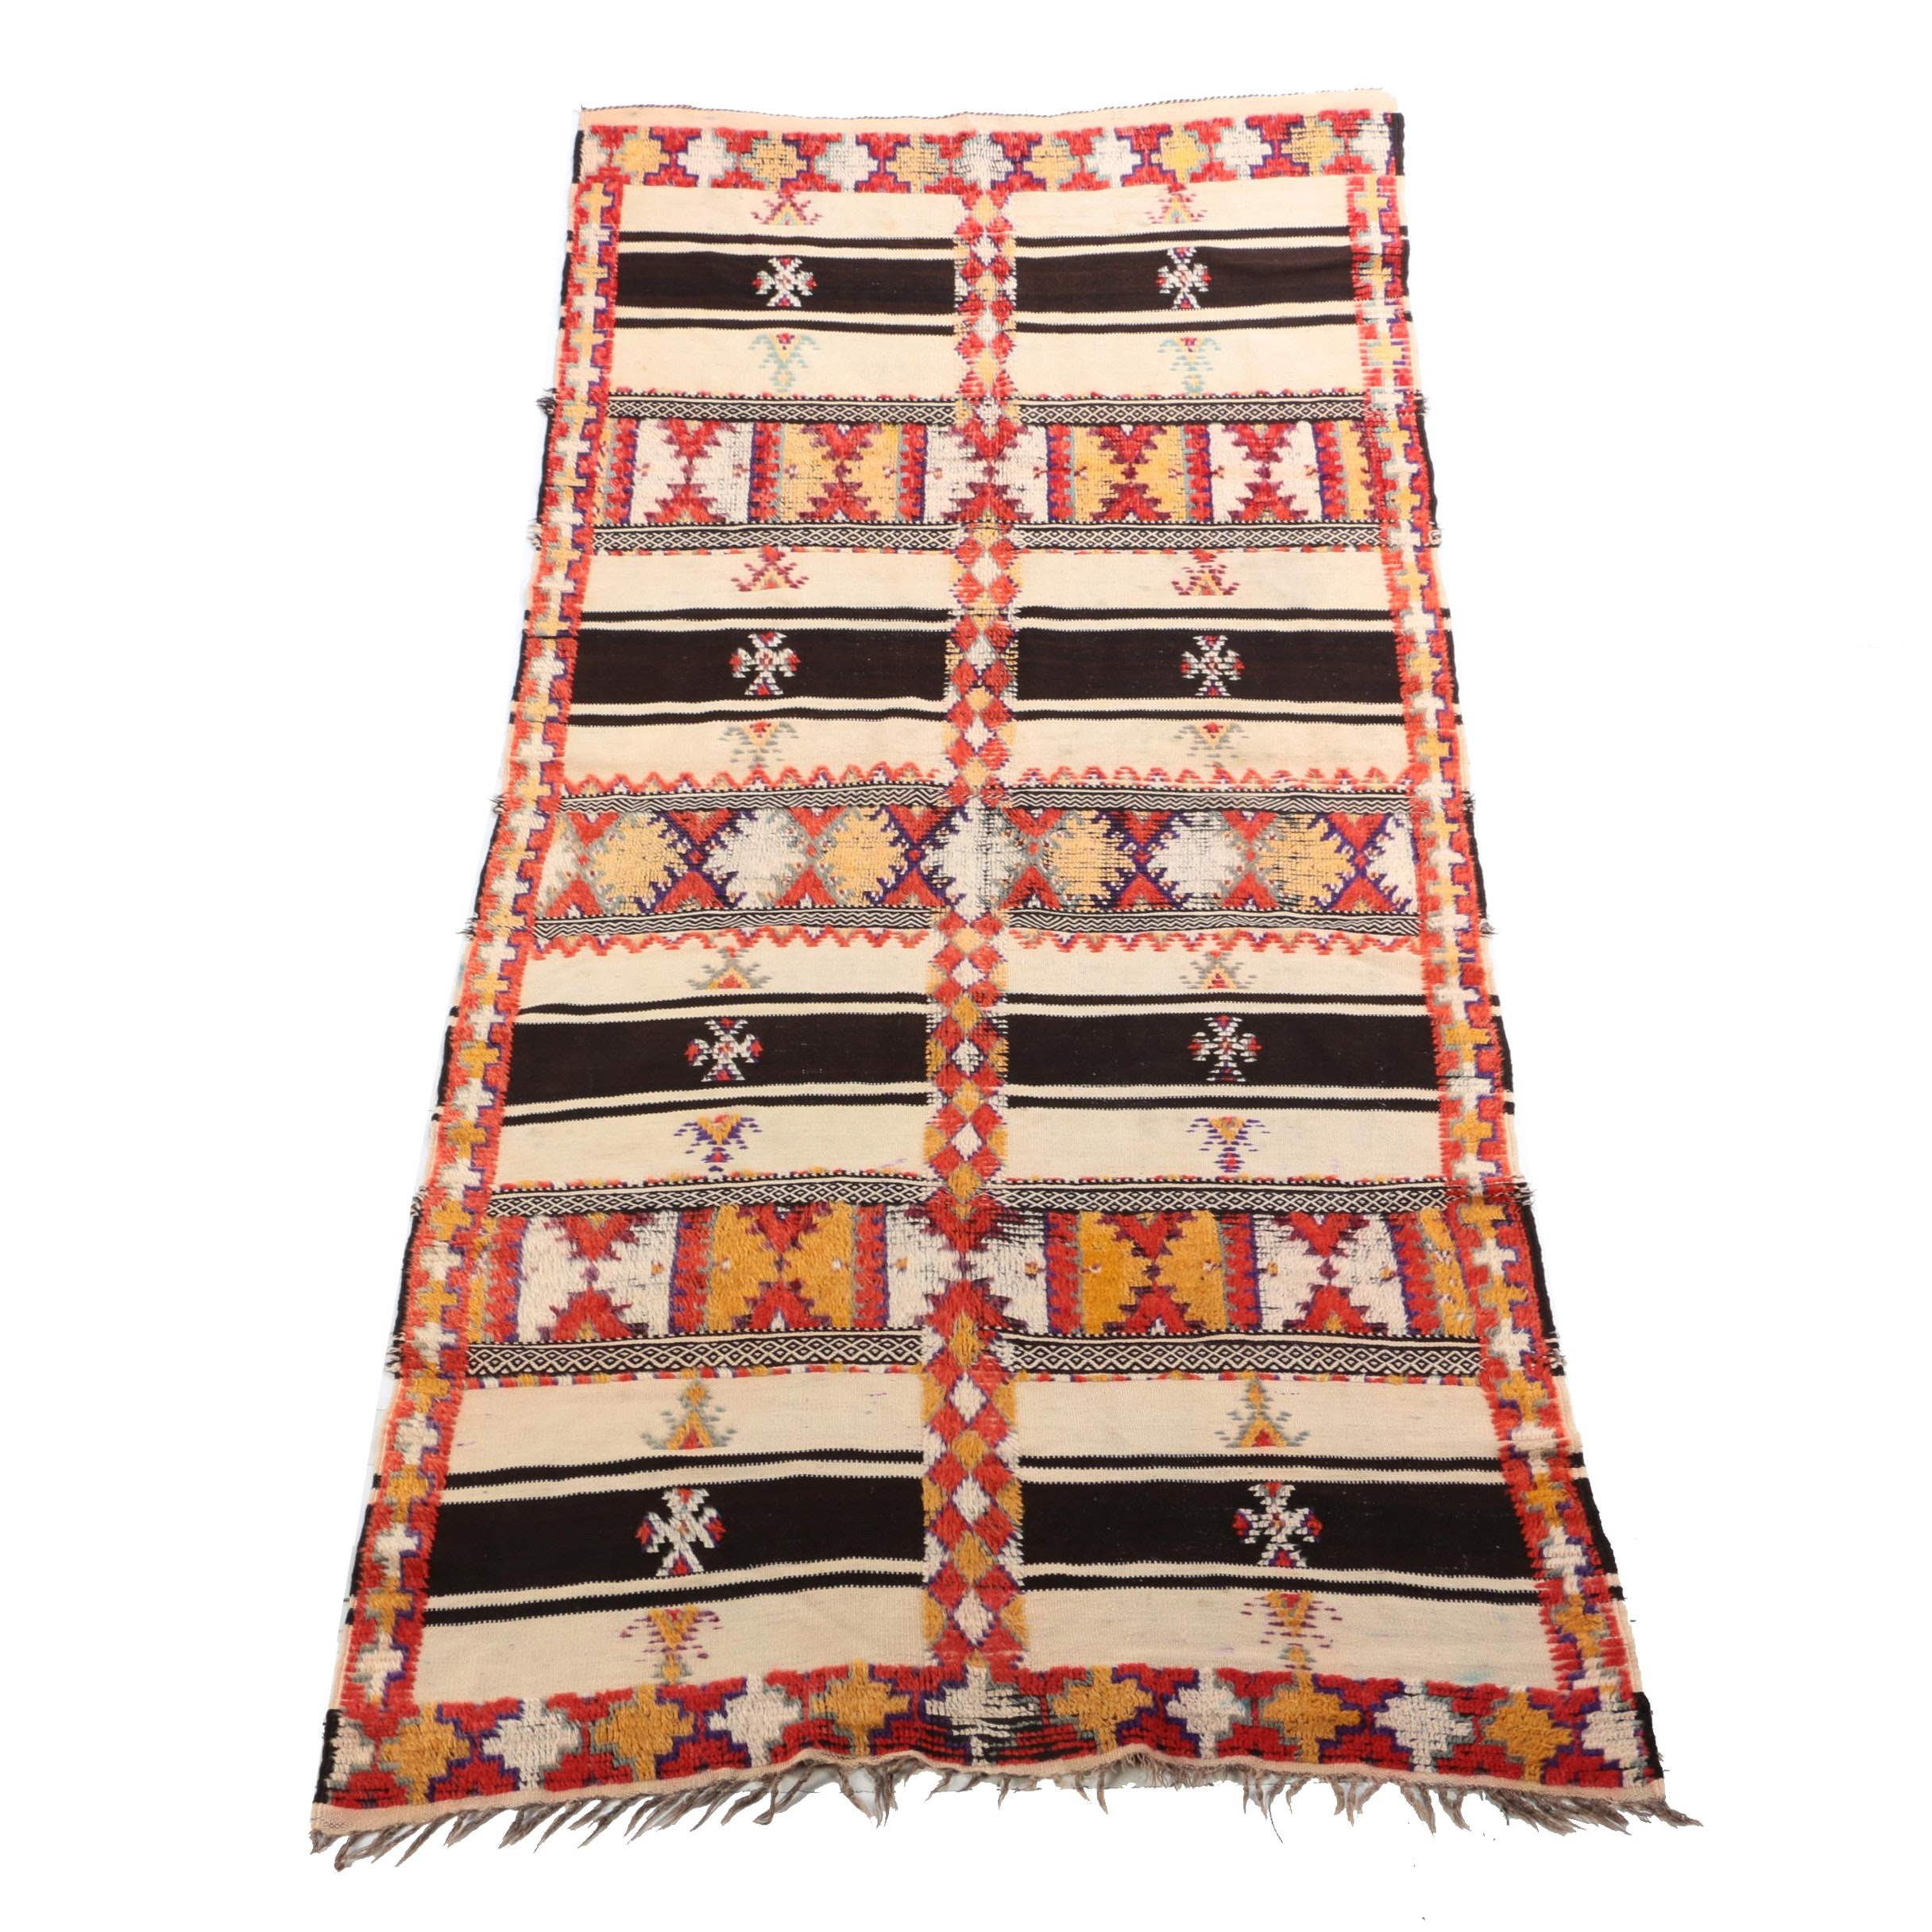 Handwoven and Hand-Knotted Moroccan Berber Wool Long Rug